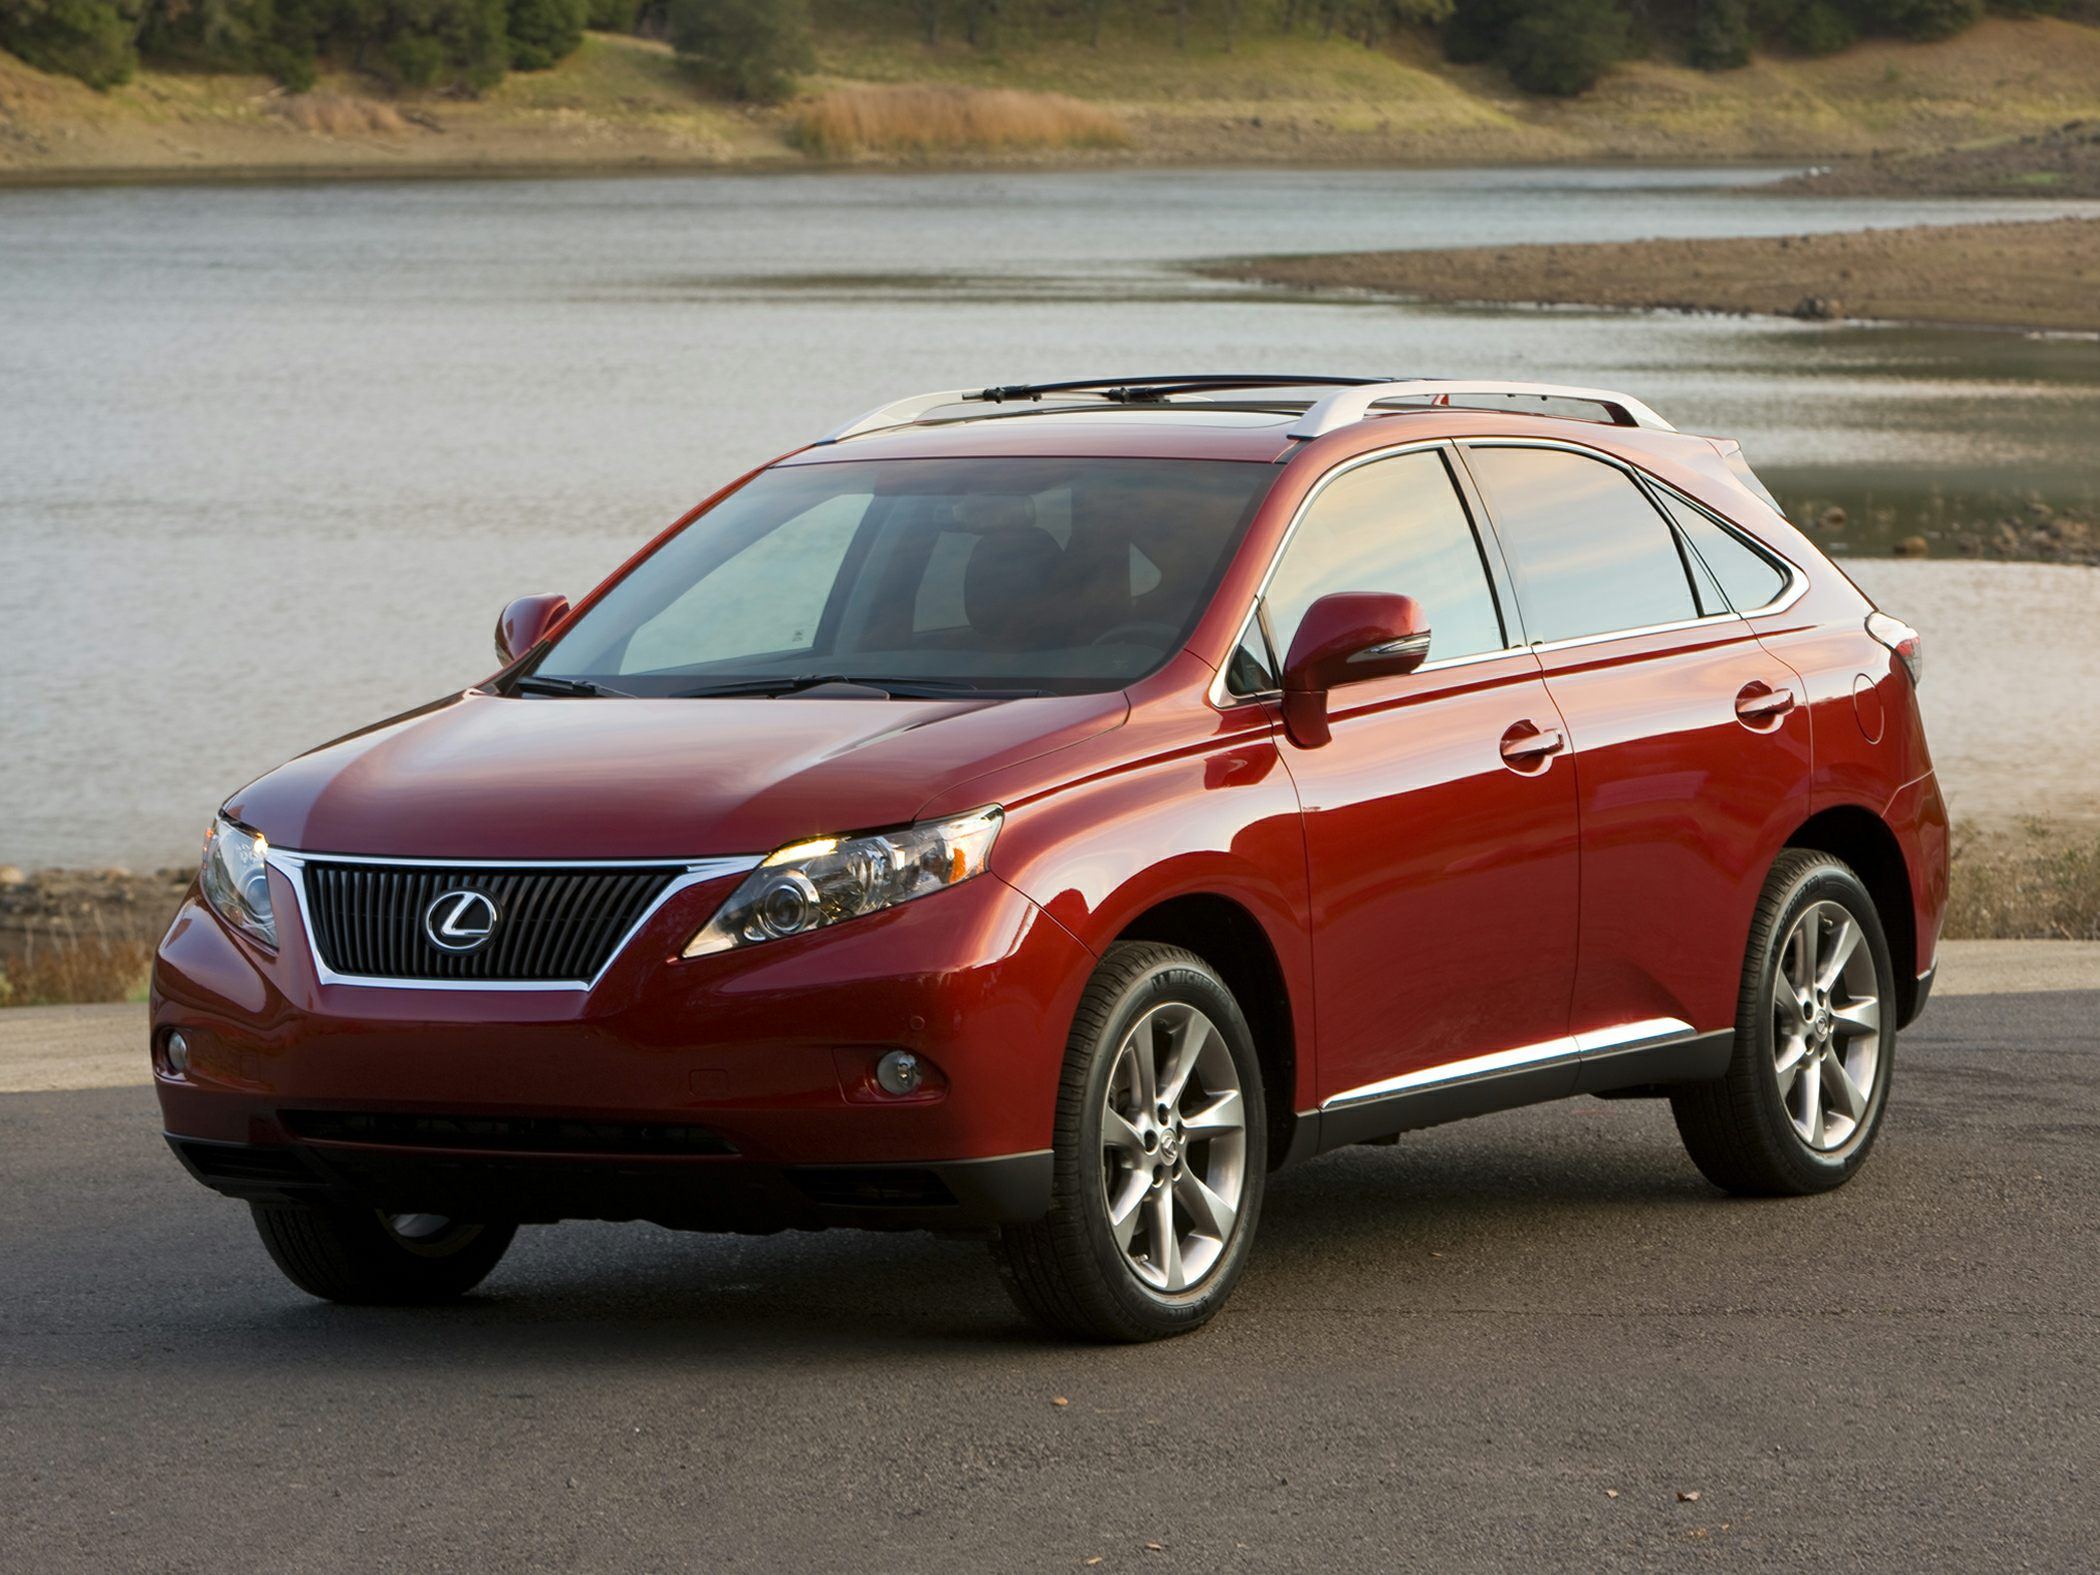 The 2011 Lexus RX350 Comes with a $469 per month lease deal for September